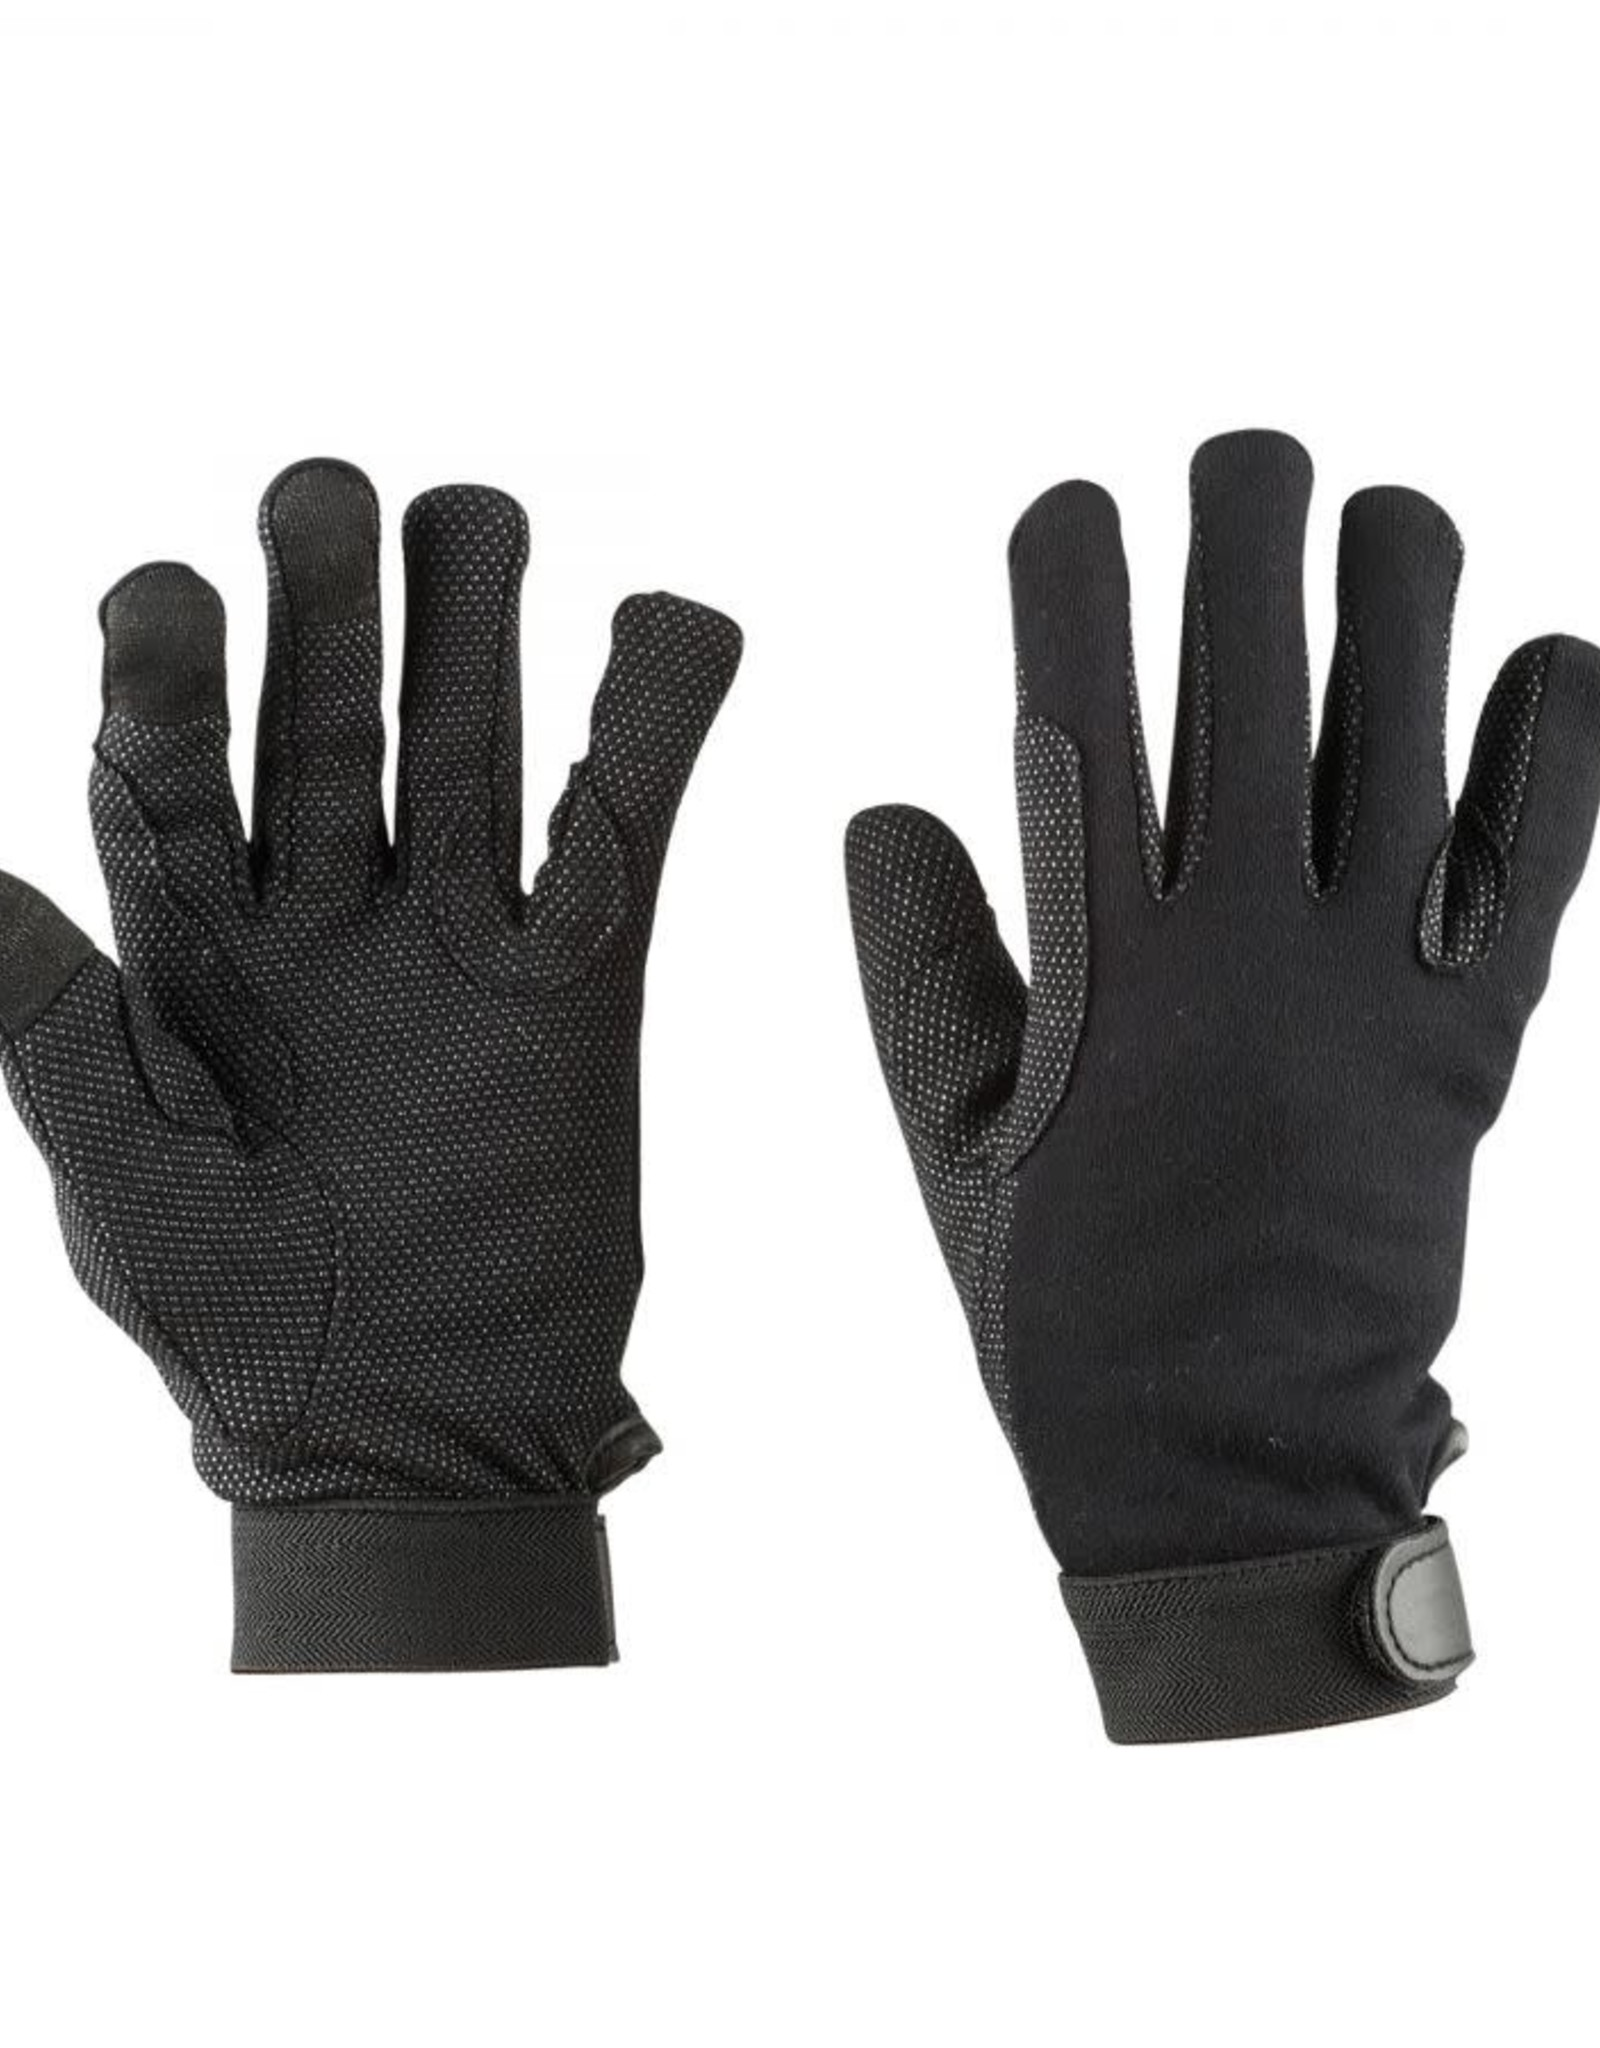 Dublin DUBLIN THINSULATE WINTER TRACK RIDING GLOVES BLACK ADULTS LARGE